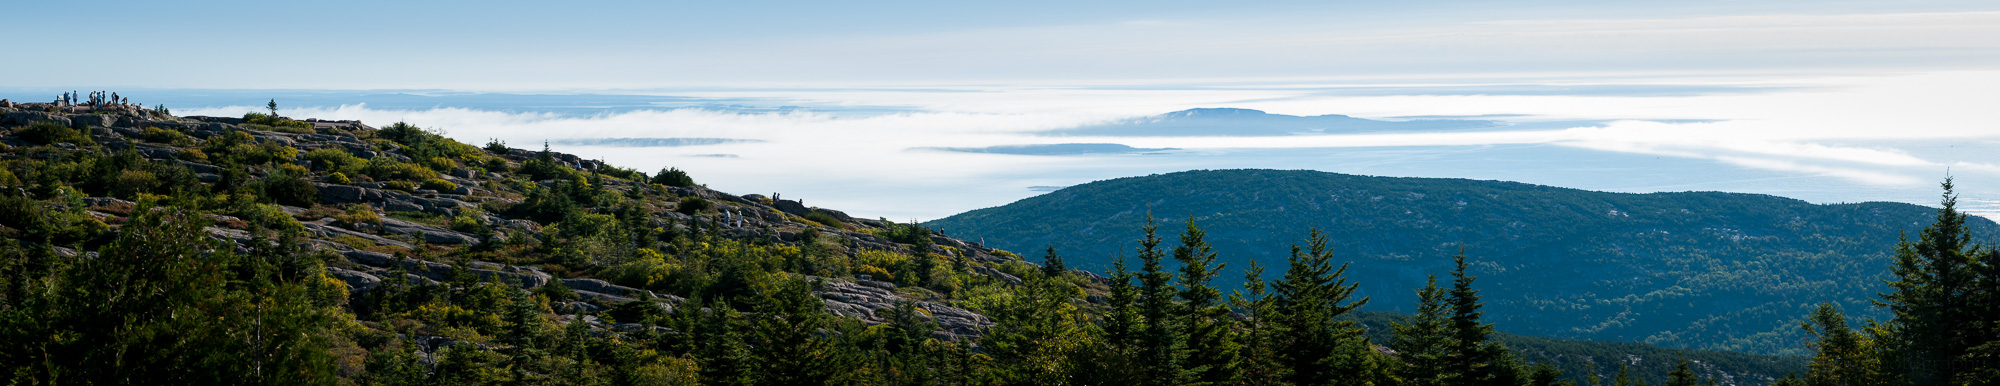 Panorama of Cadillac Mountain overlooking the Gulf of Maine